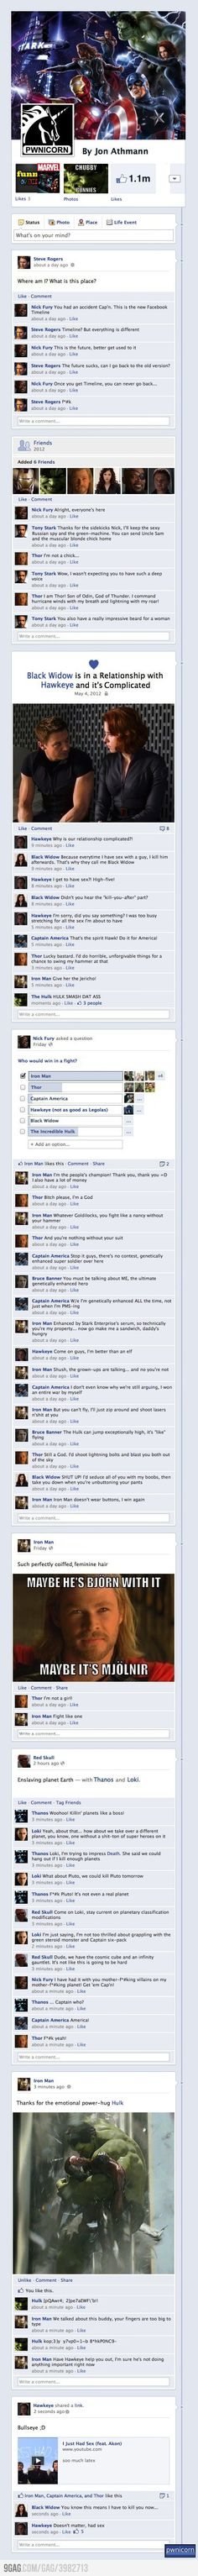 haha the black widow in a relationship with hawkeye made me laugh